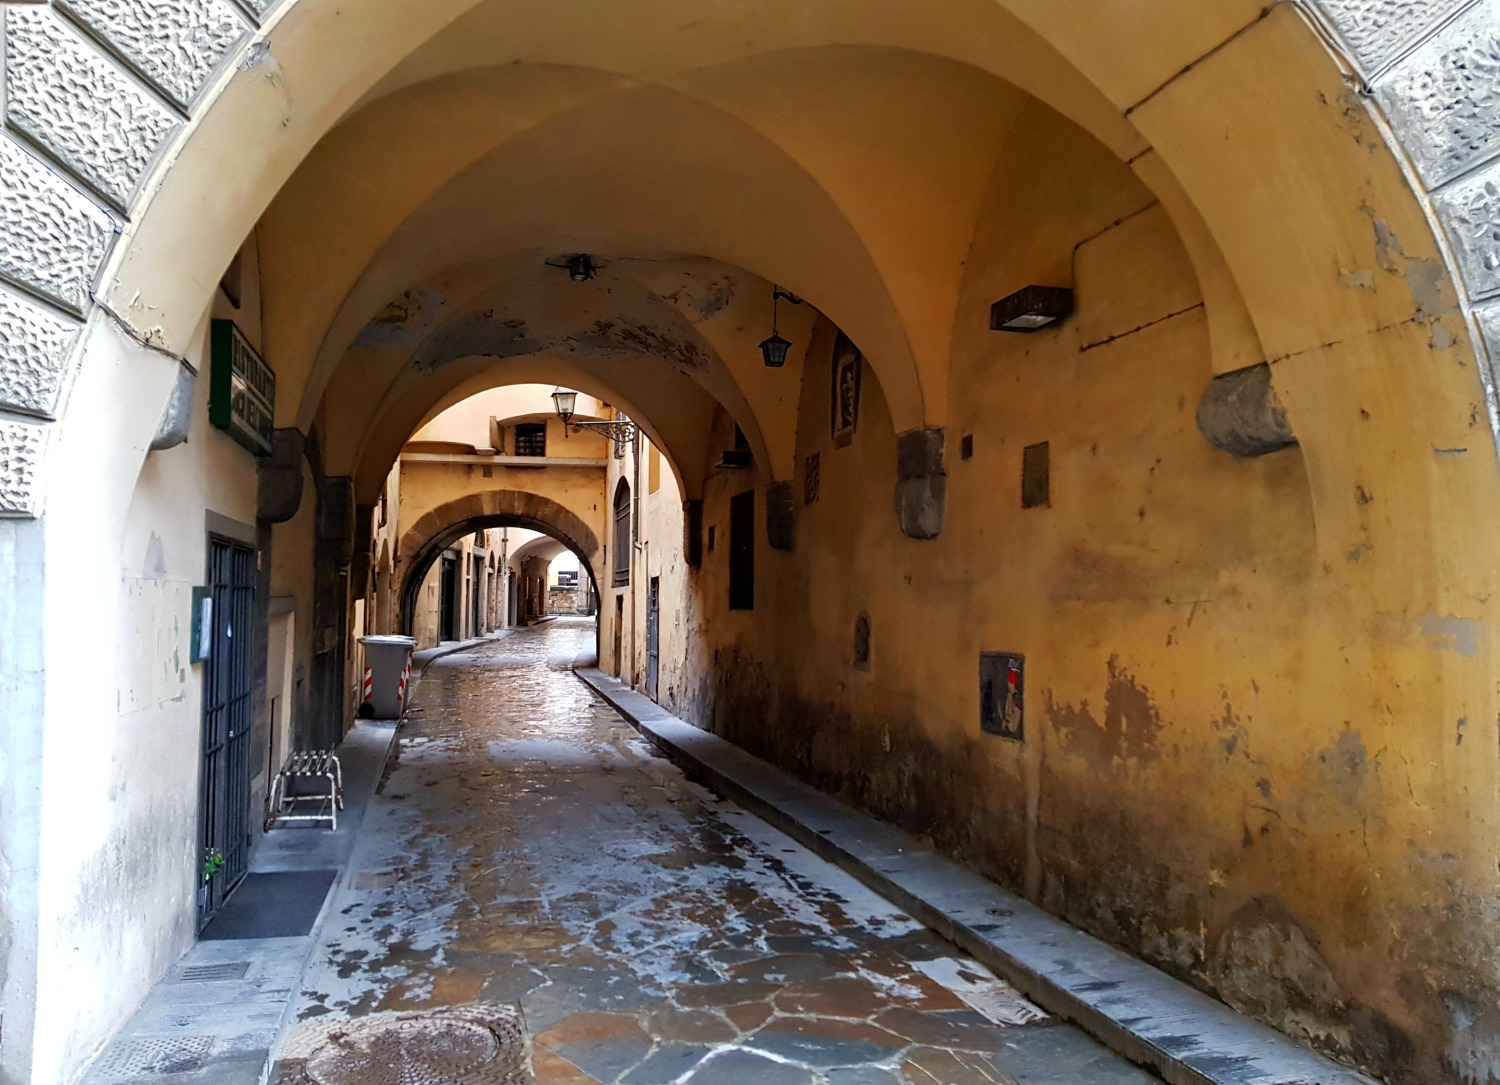 Alleyway leading through a tunnel in Florence, Italy - my Uffizi tour with kids and gelato making day in Florence